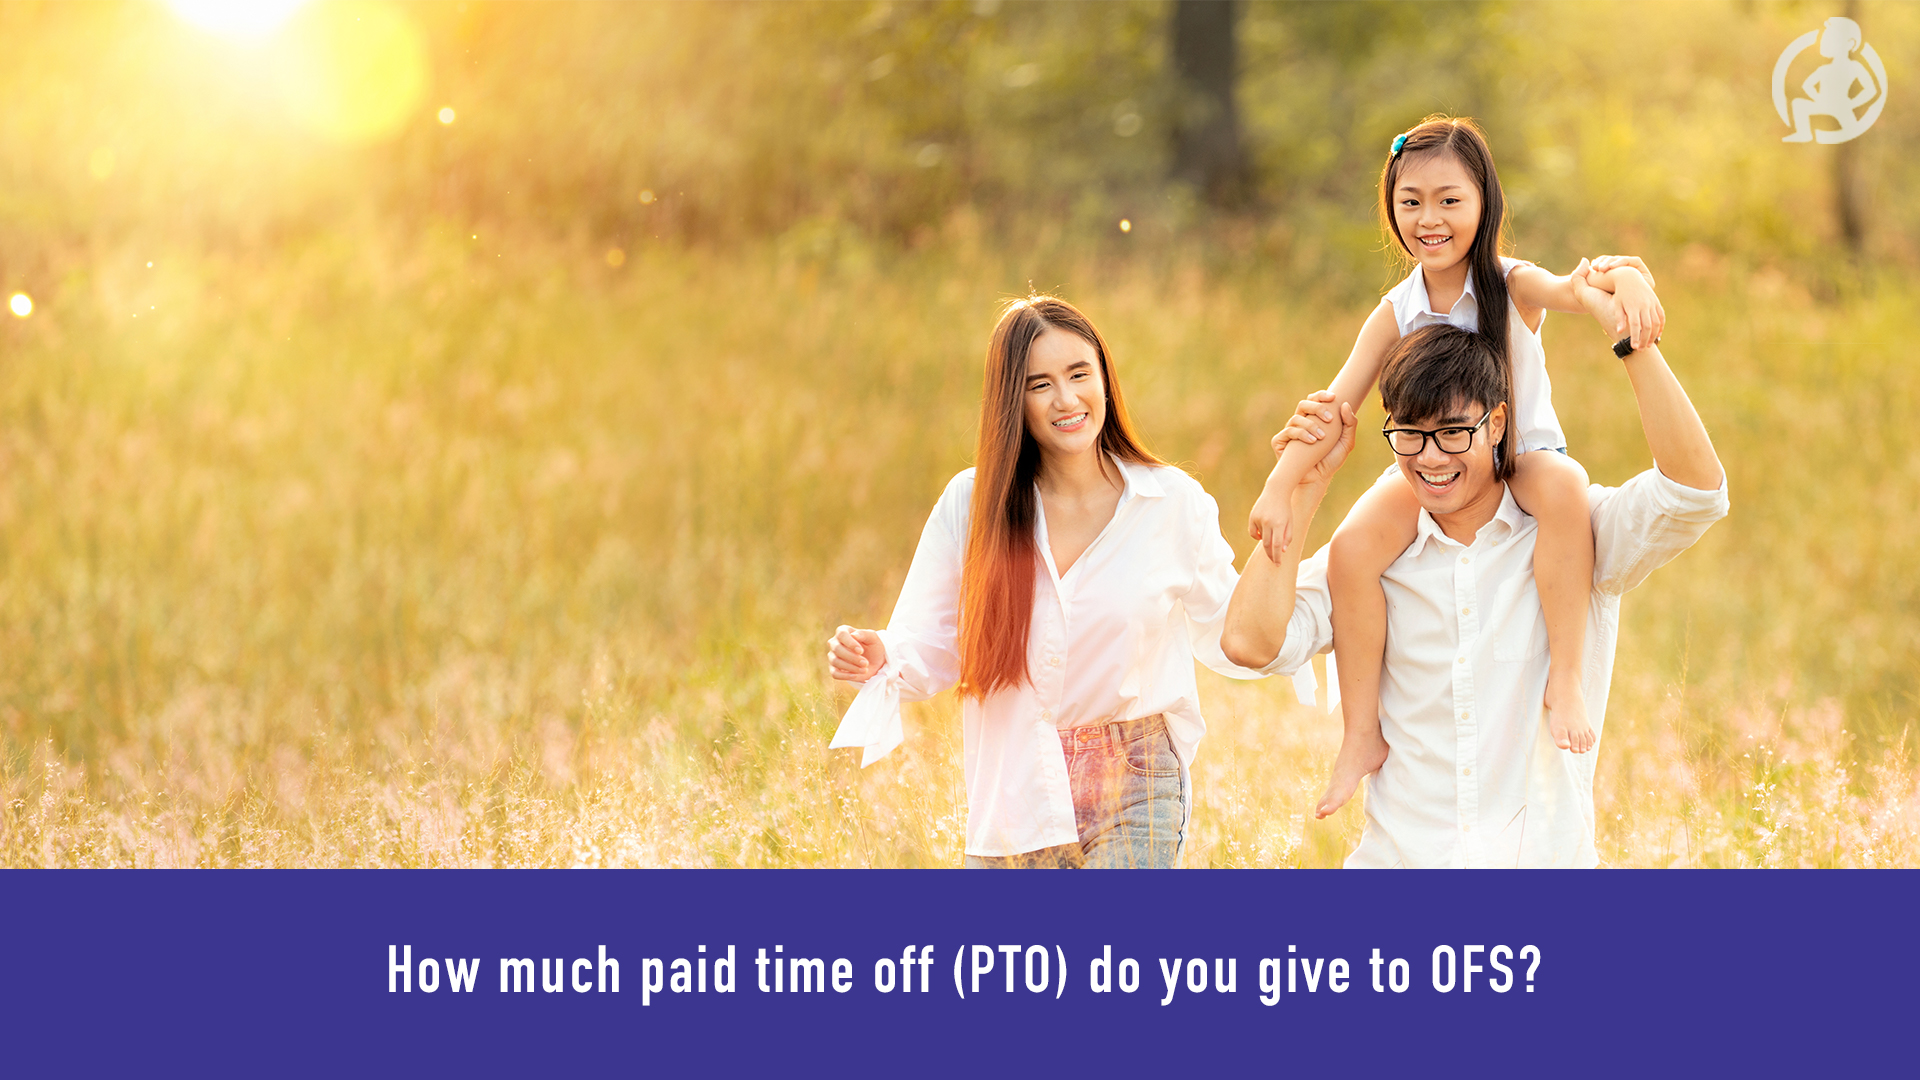 How much paid time off (PTO) do you give to OFS